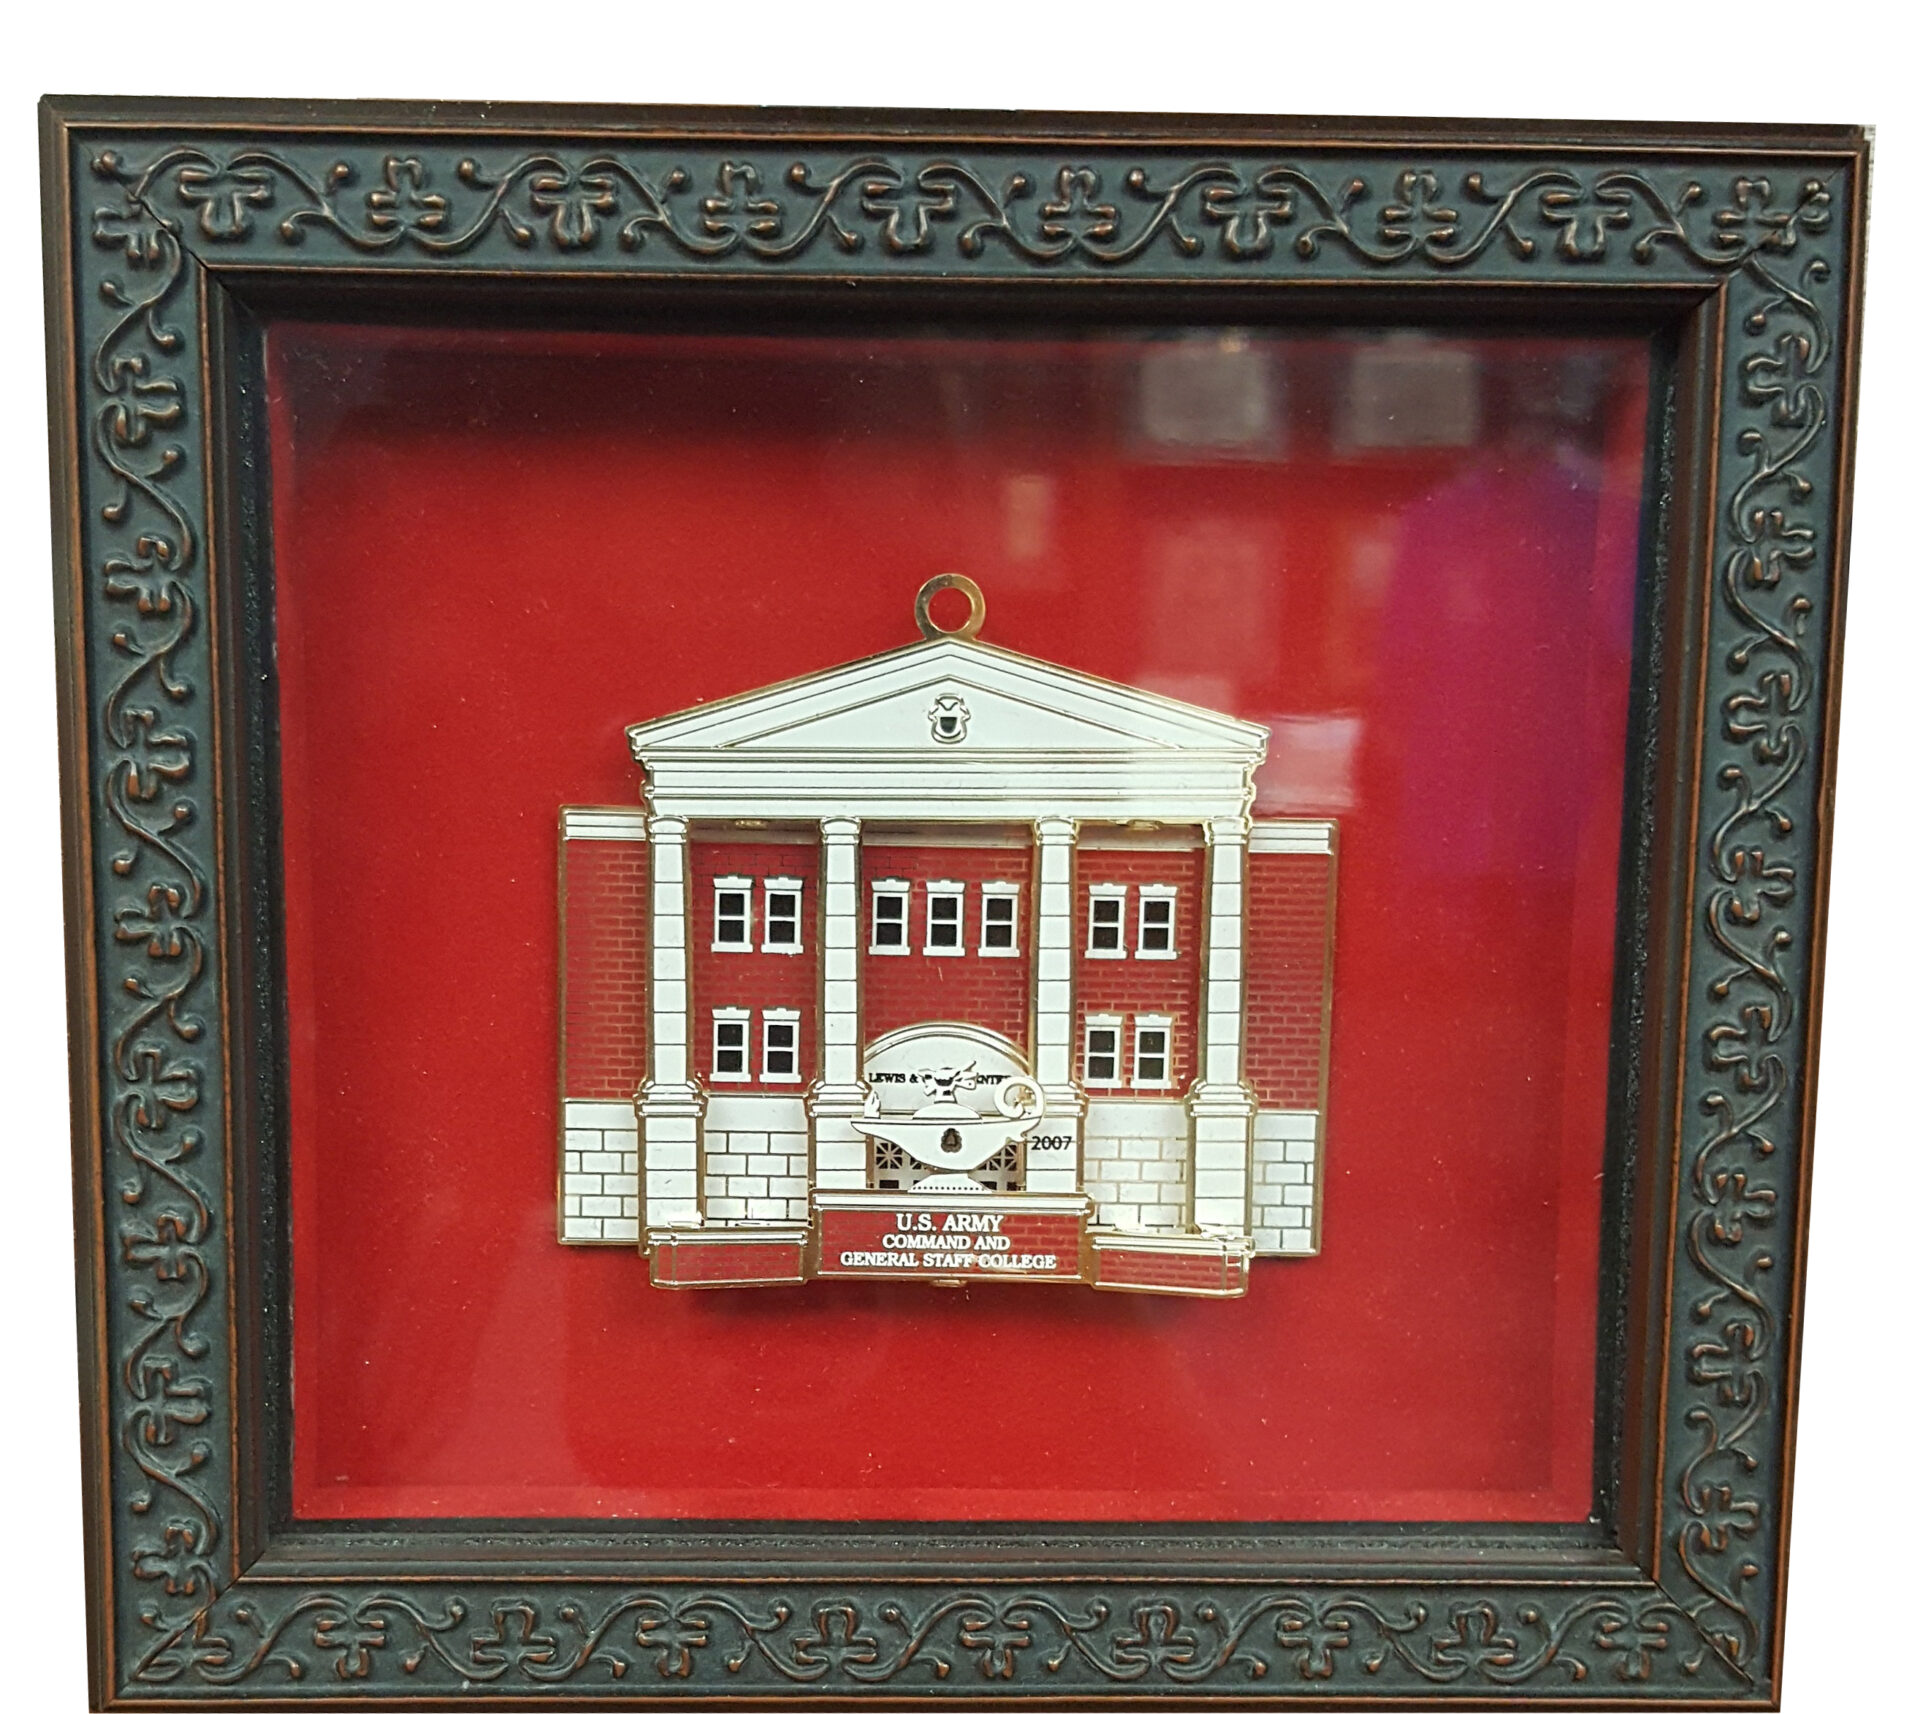 brown frame with red matting